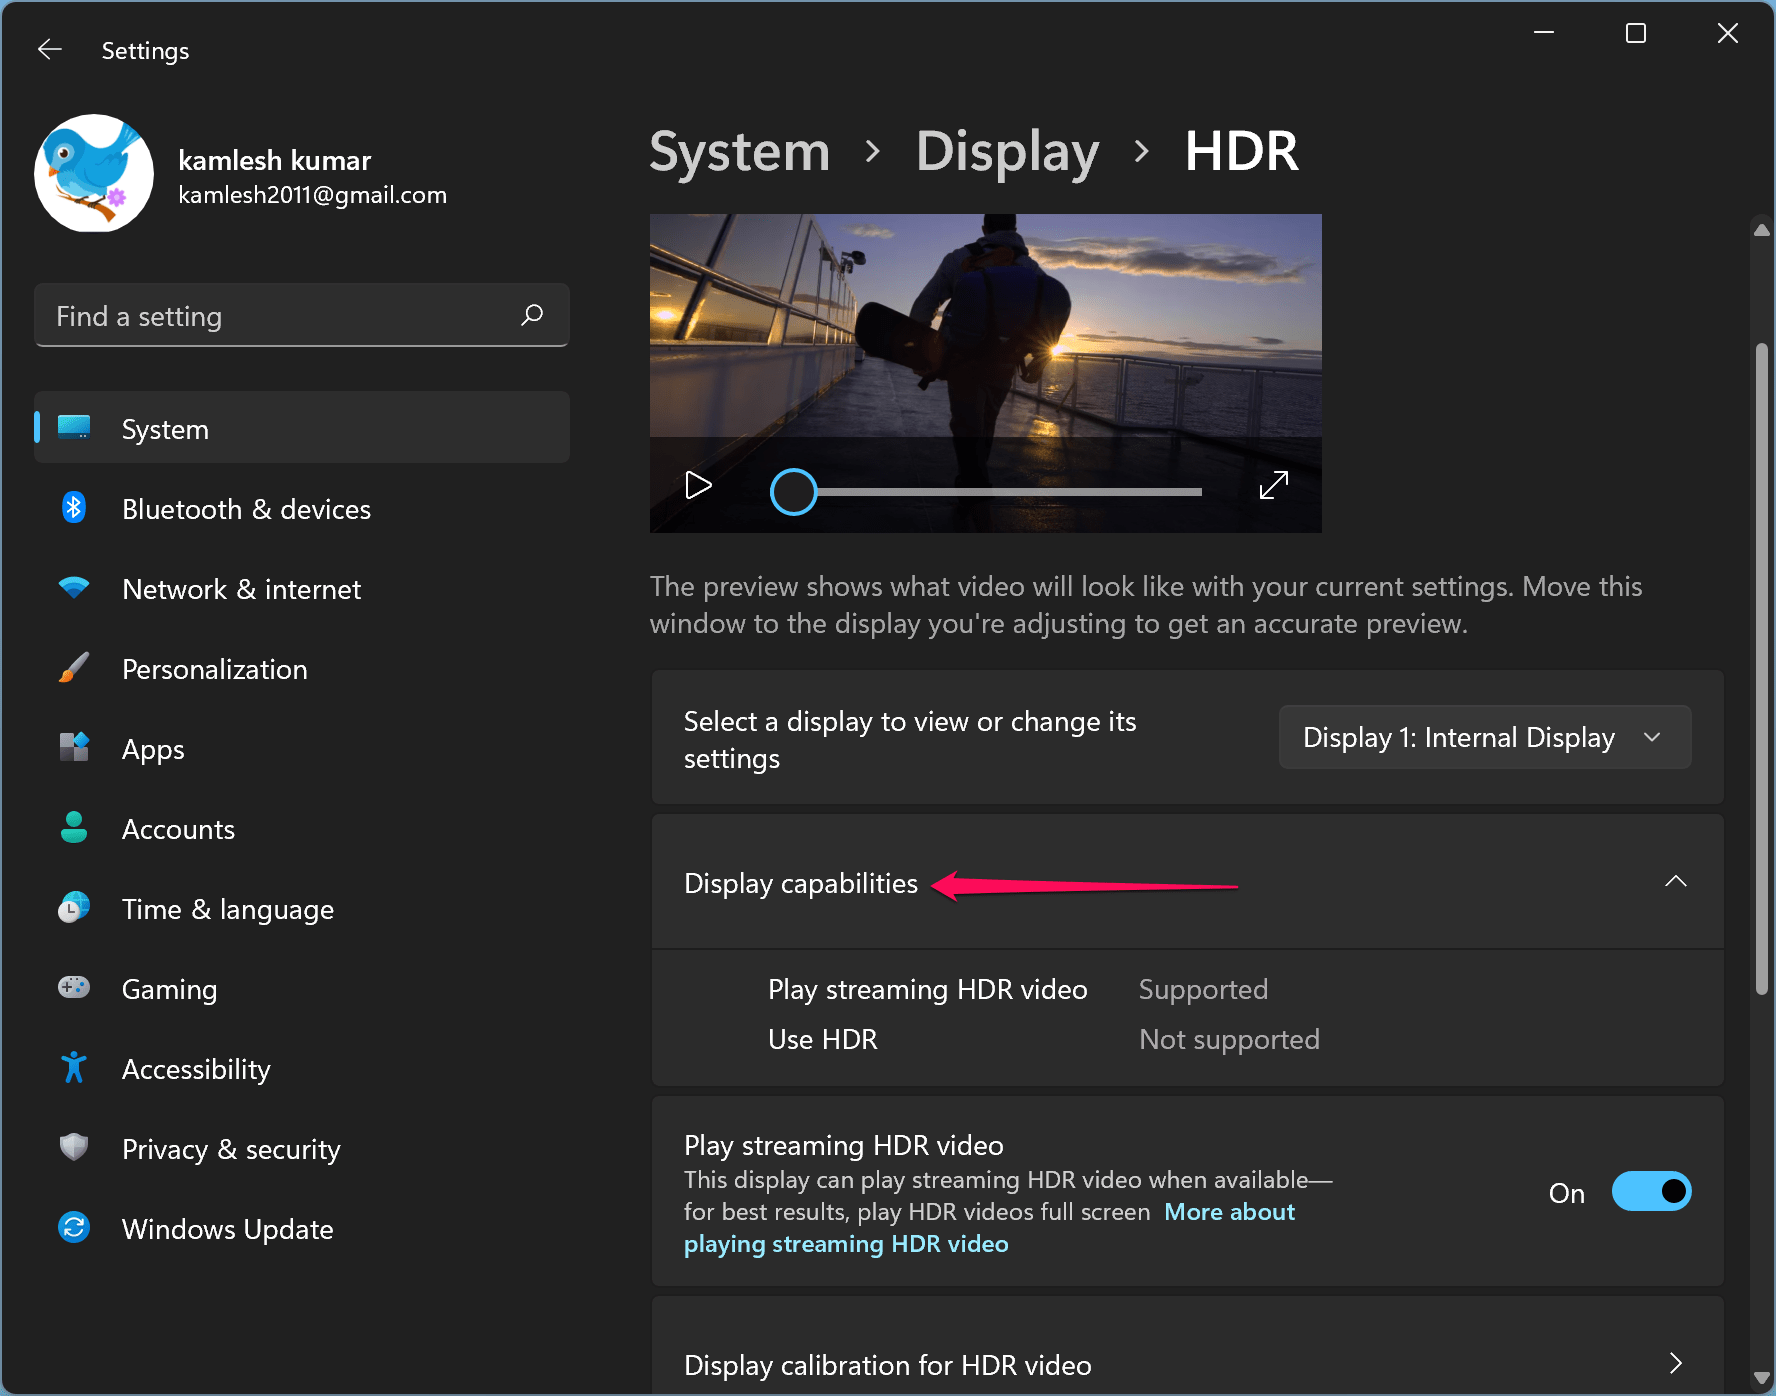 How to Know if HDR is Supported on a Windows 11 PC?